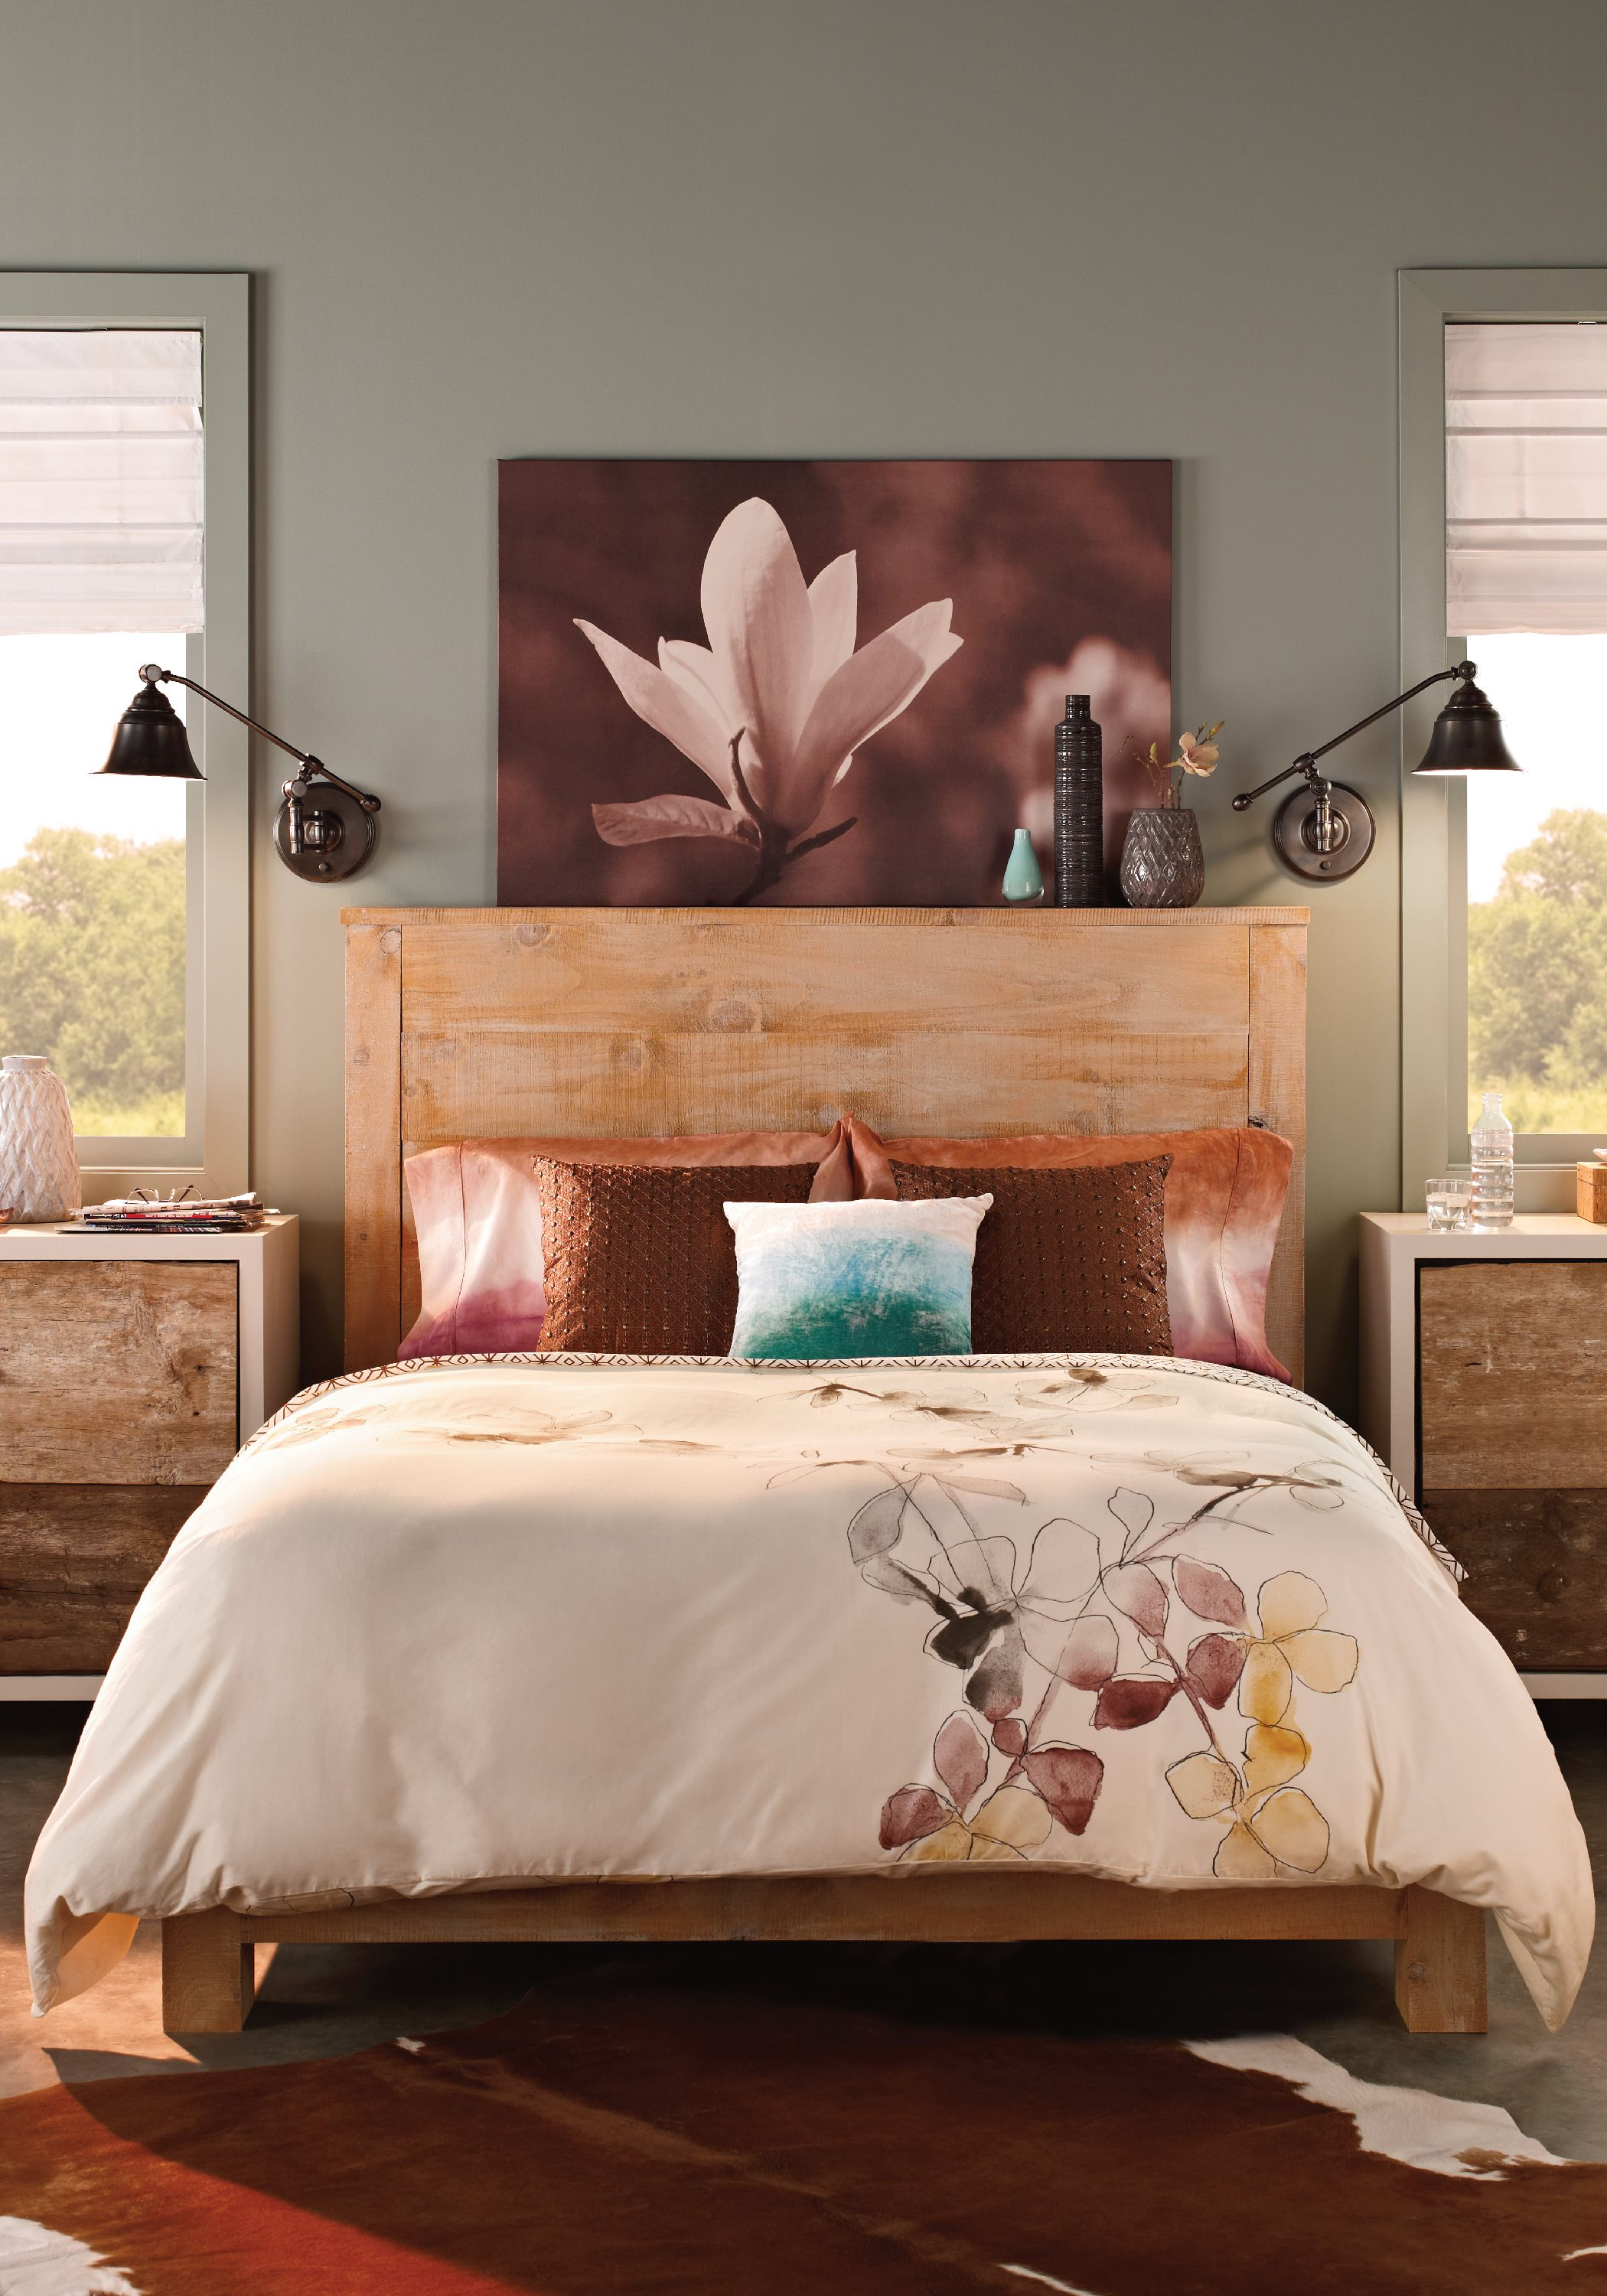 Bedroom - Rooms & Spaces - Inspirations | Bedrooms | Zen ...